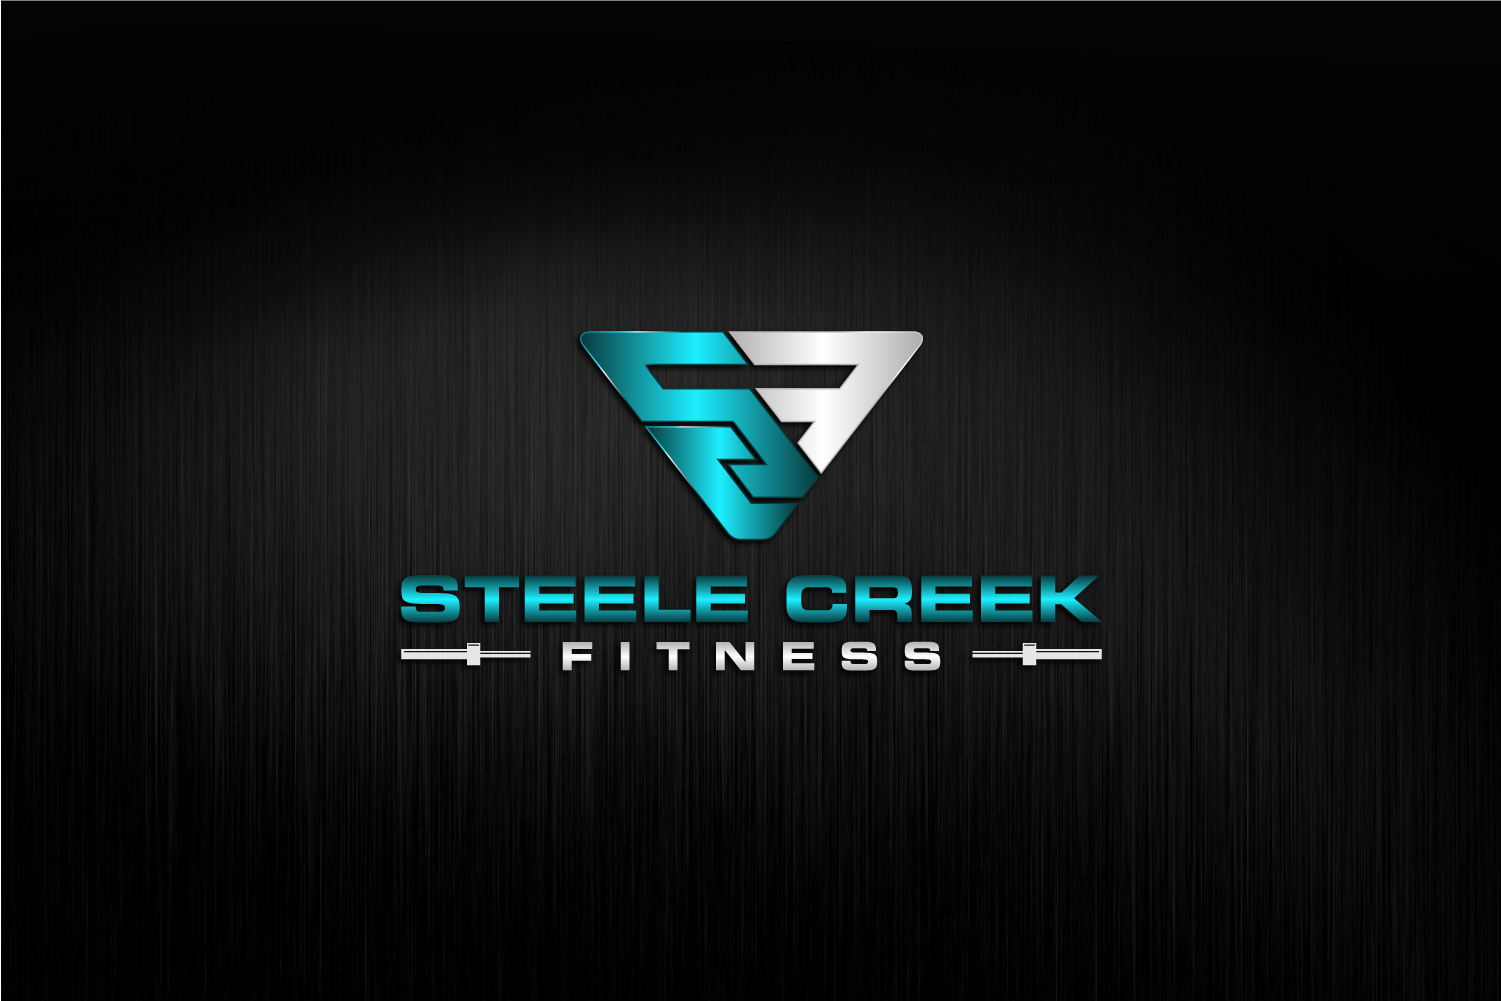 Create a clean, simple logo for a personal training fitness studio.